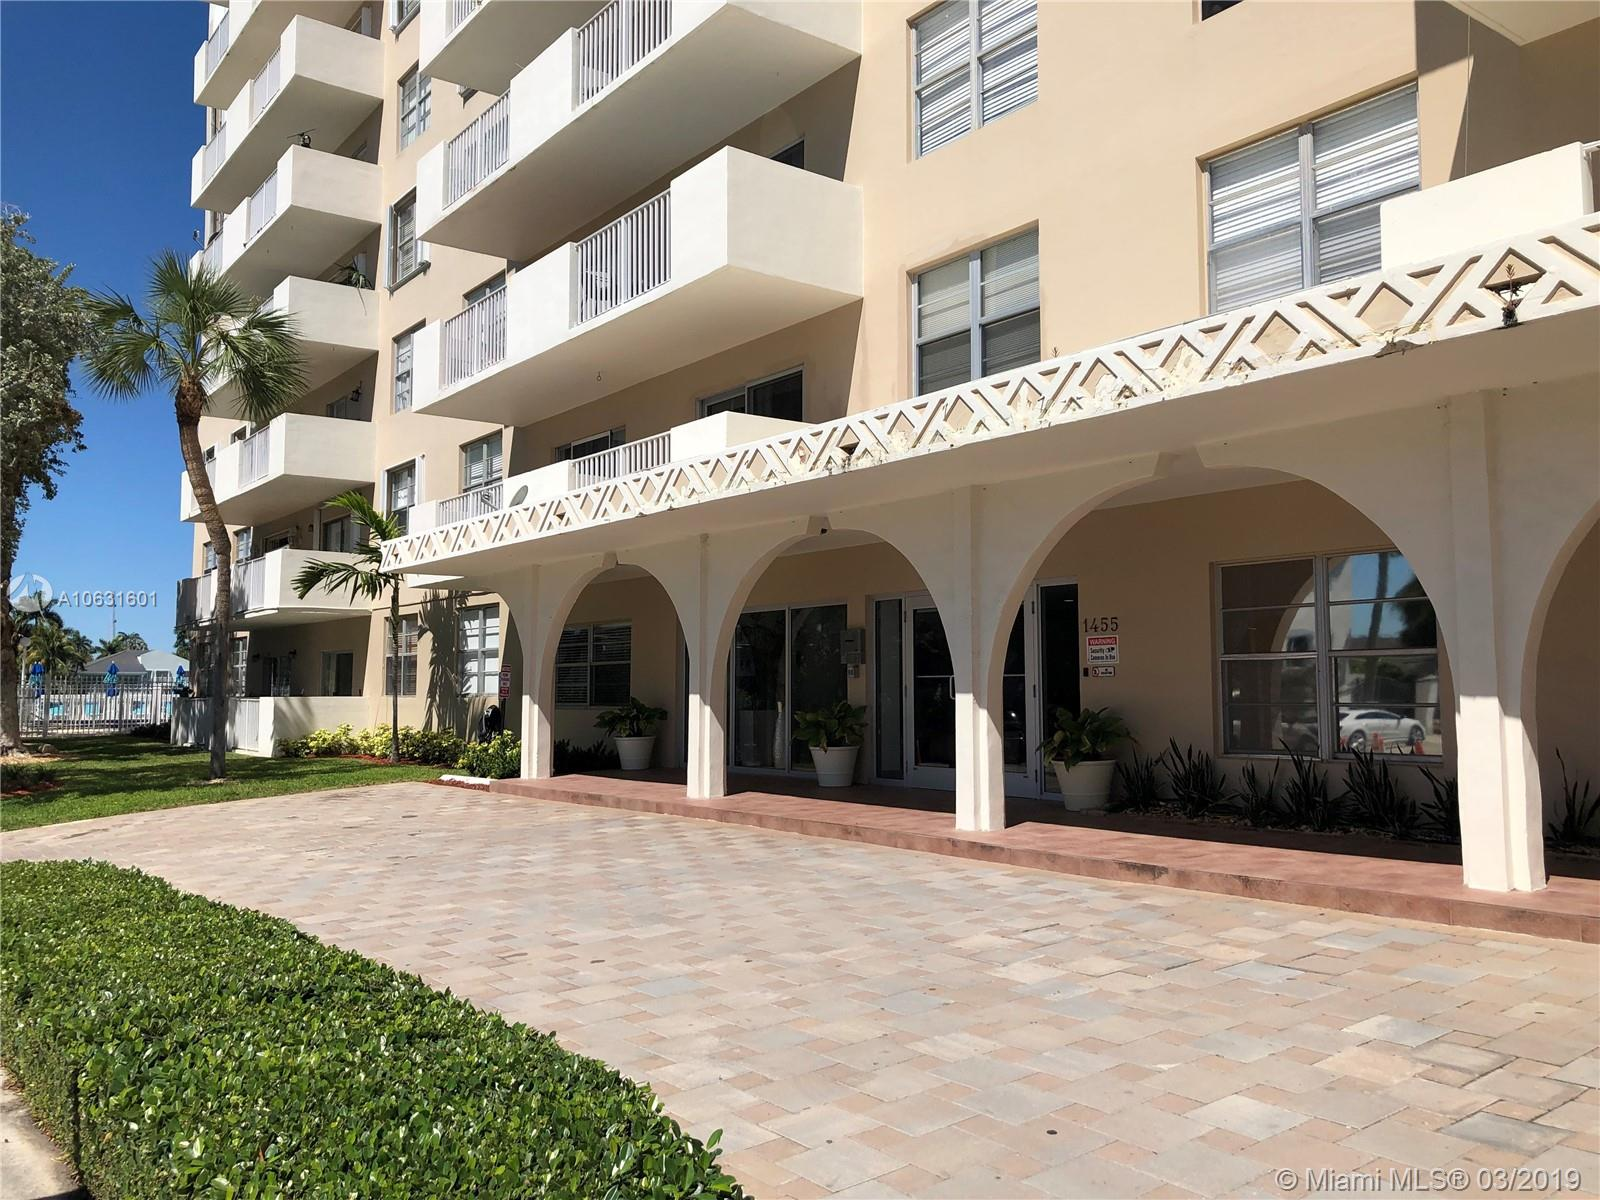 1455  N Treasure Dr #4D For Sale A10631601, FL